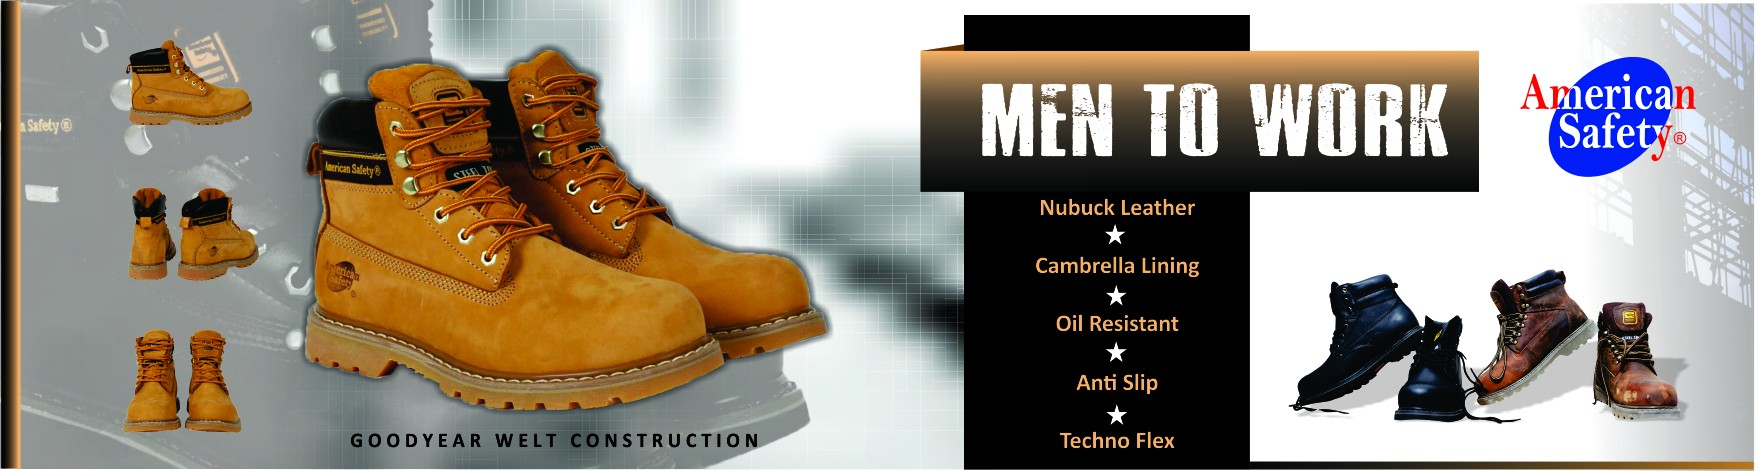 American Safety Genuine Leather Safety Shoes